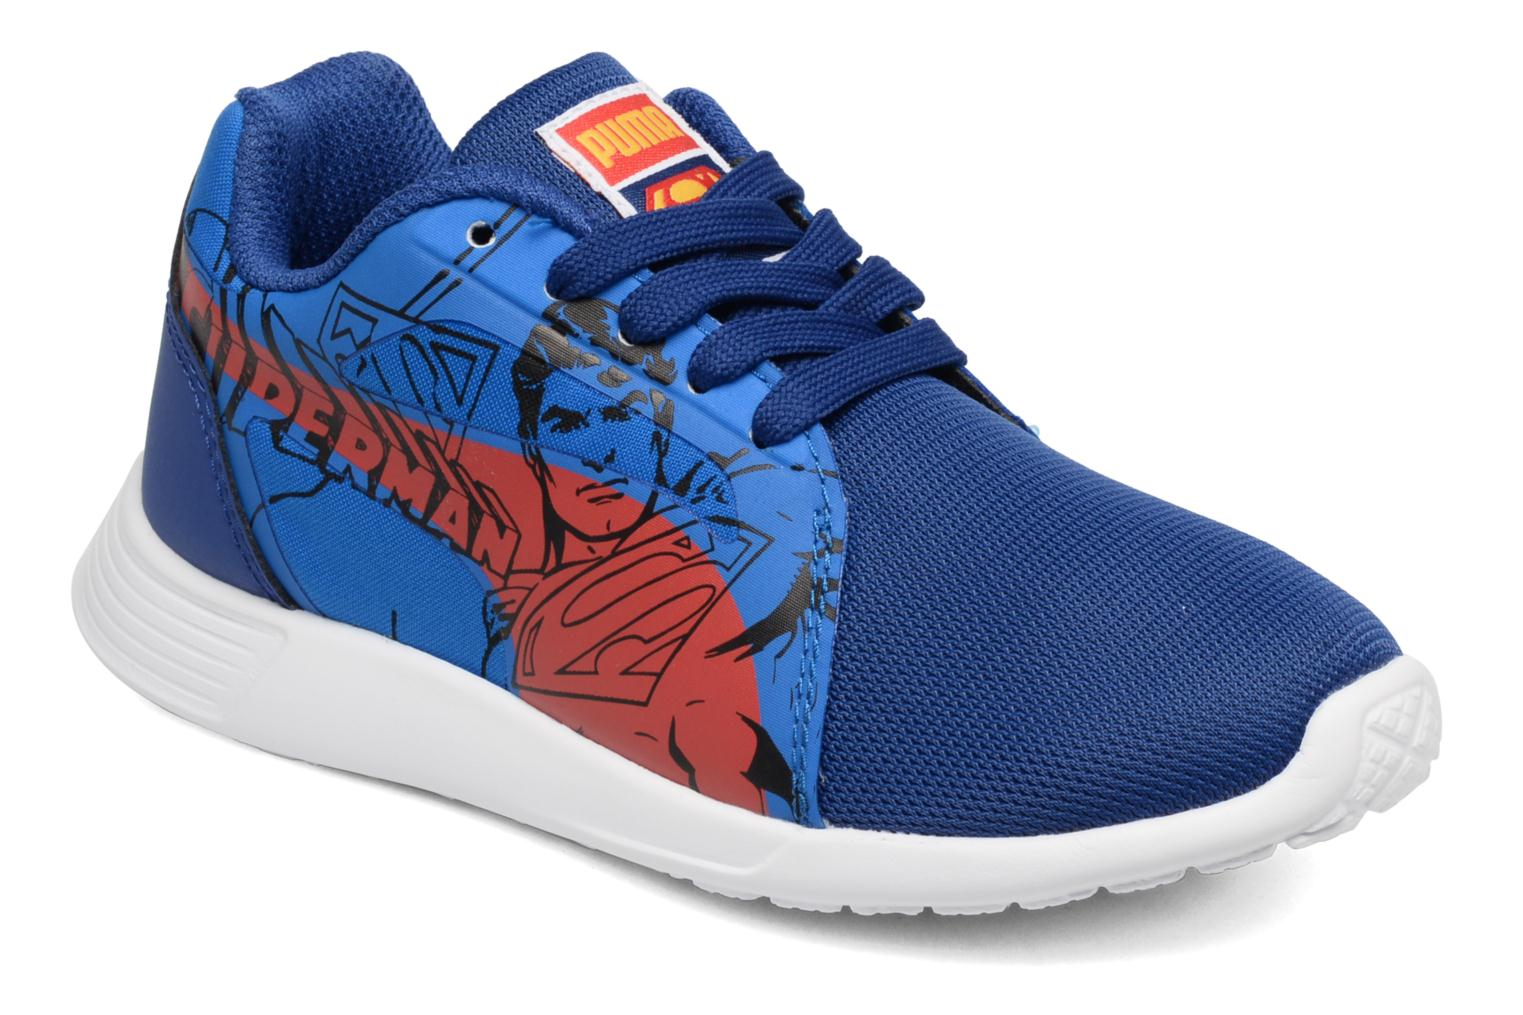 Sneakers Inf St Trainer Superman Ps St Trainer Superman by Puma